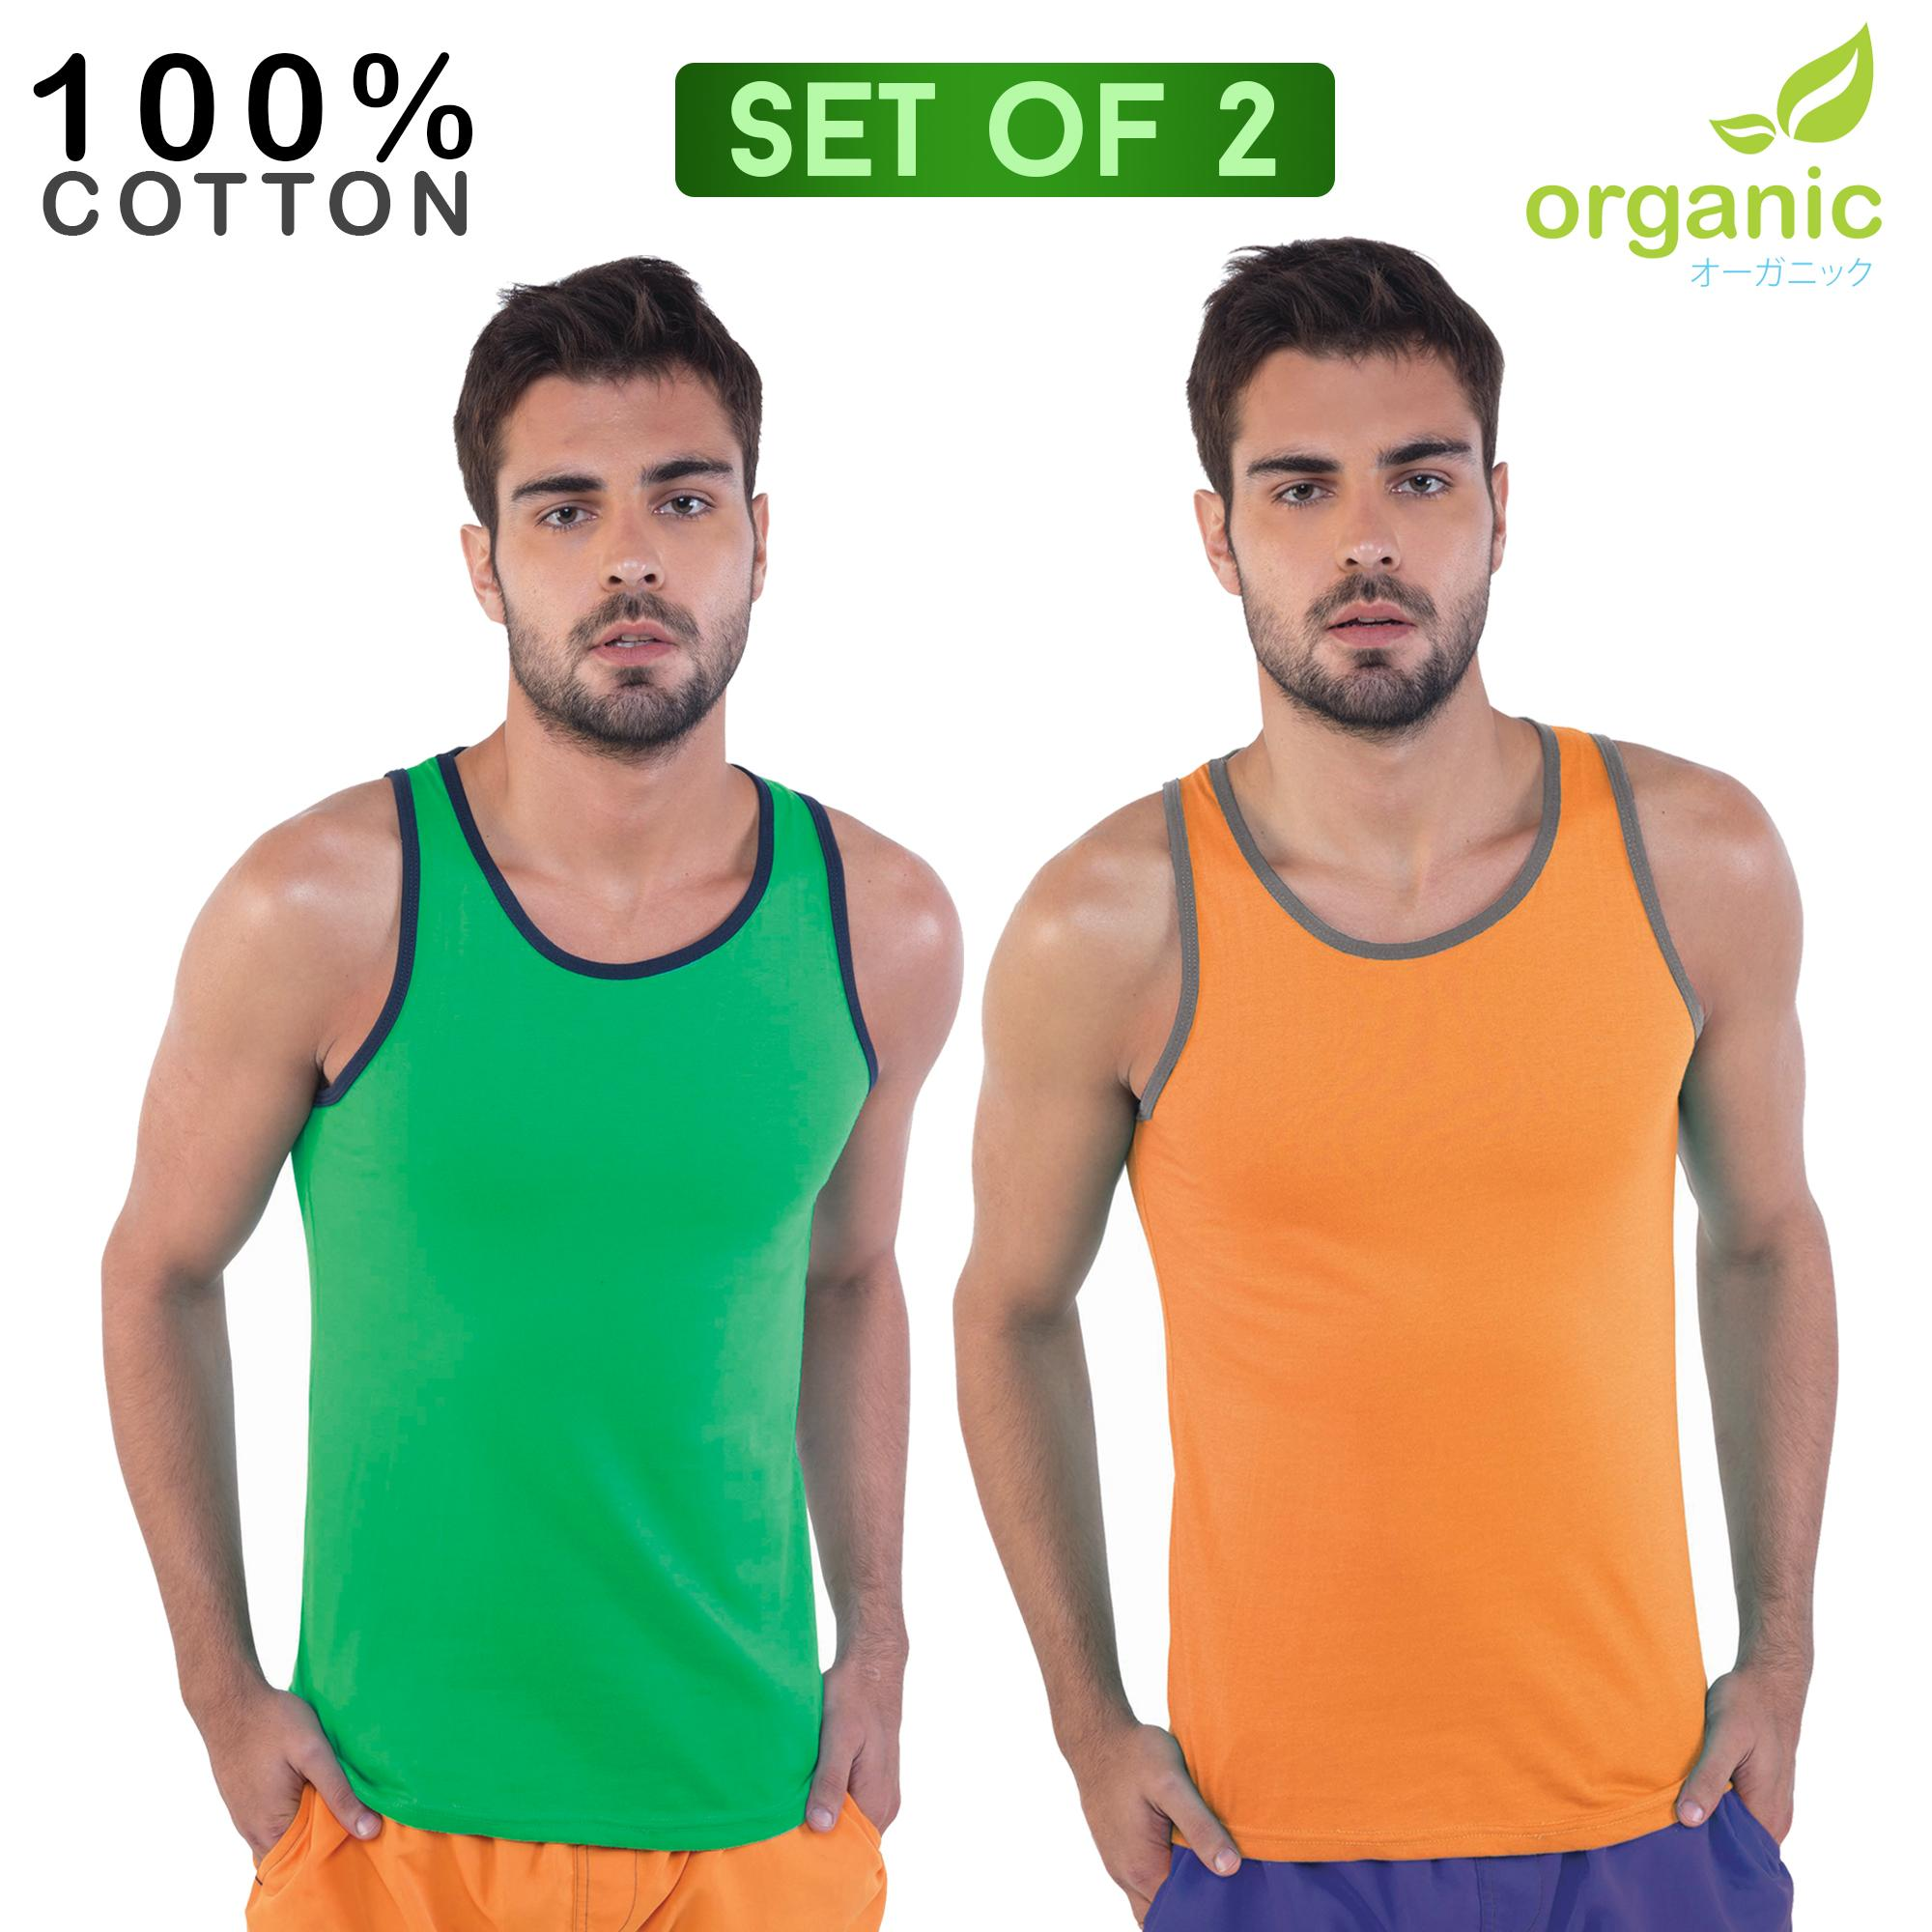 Organic Mens 100% Cotton (set Of 2) Green+orange Tank Top Sando Tees T Shirt Tshirt Shirts Tshirts Tops Top For Men By Organic.